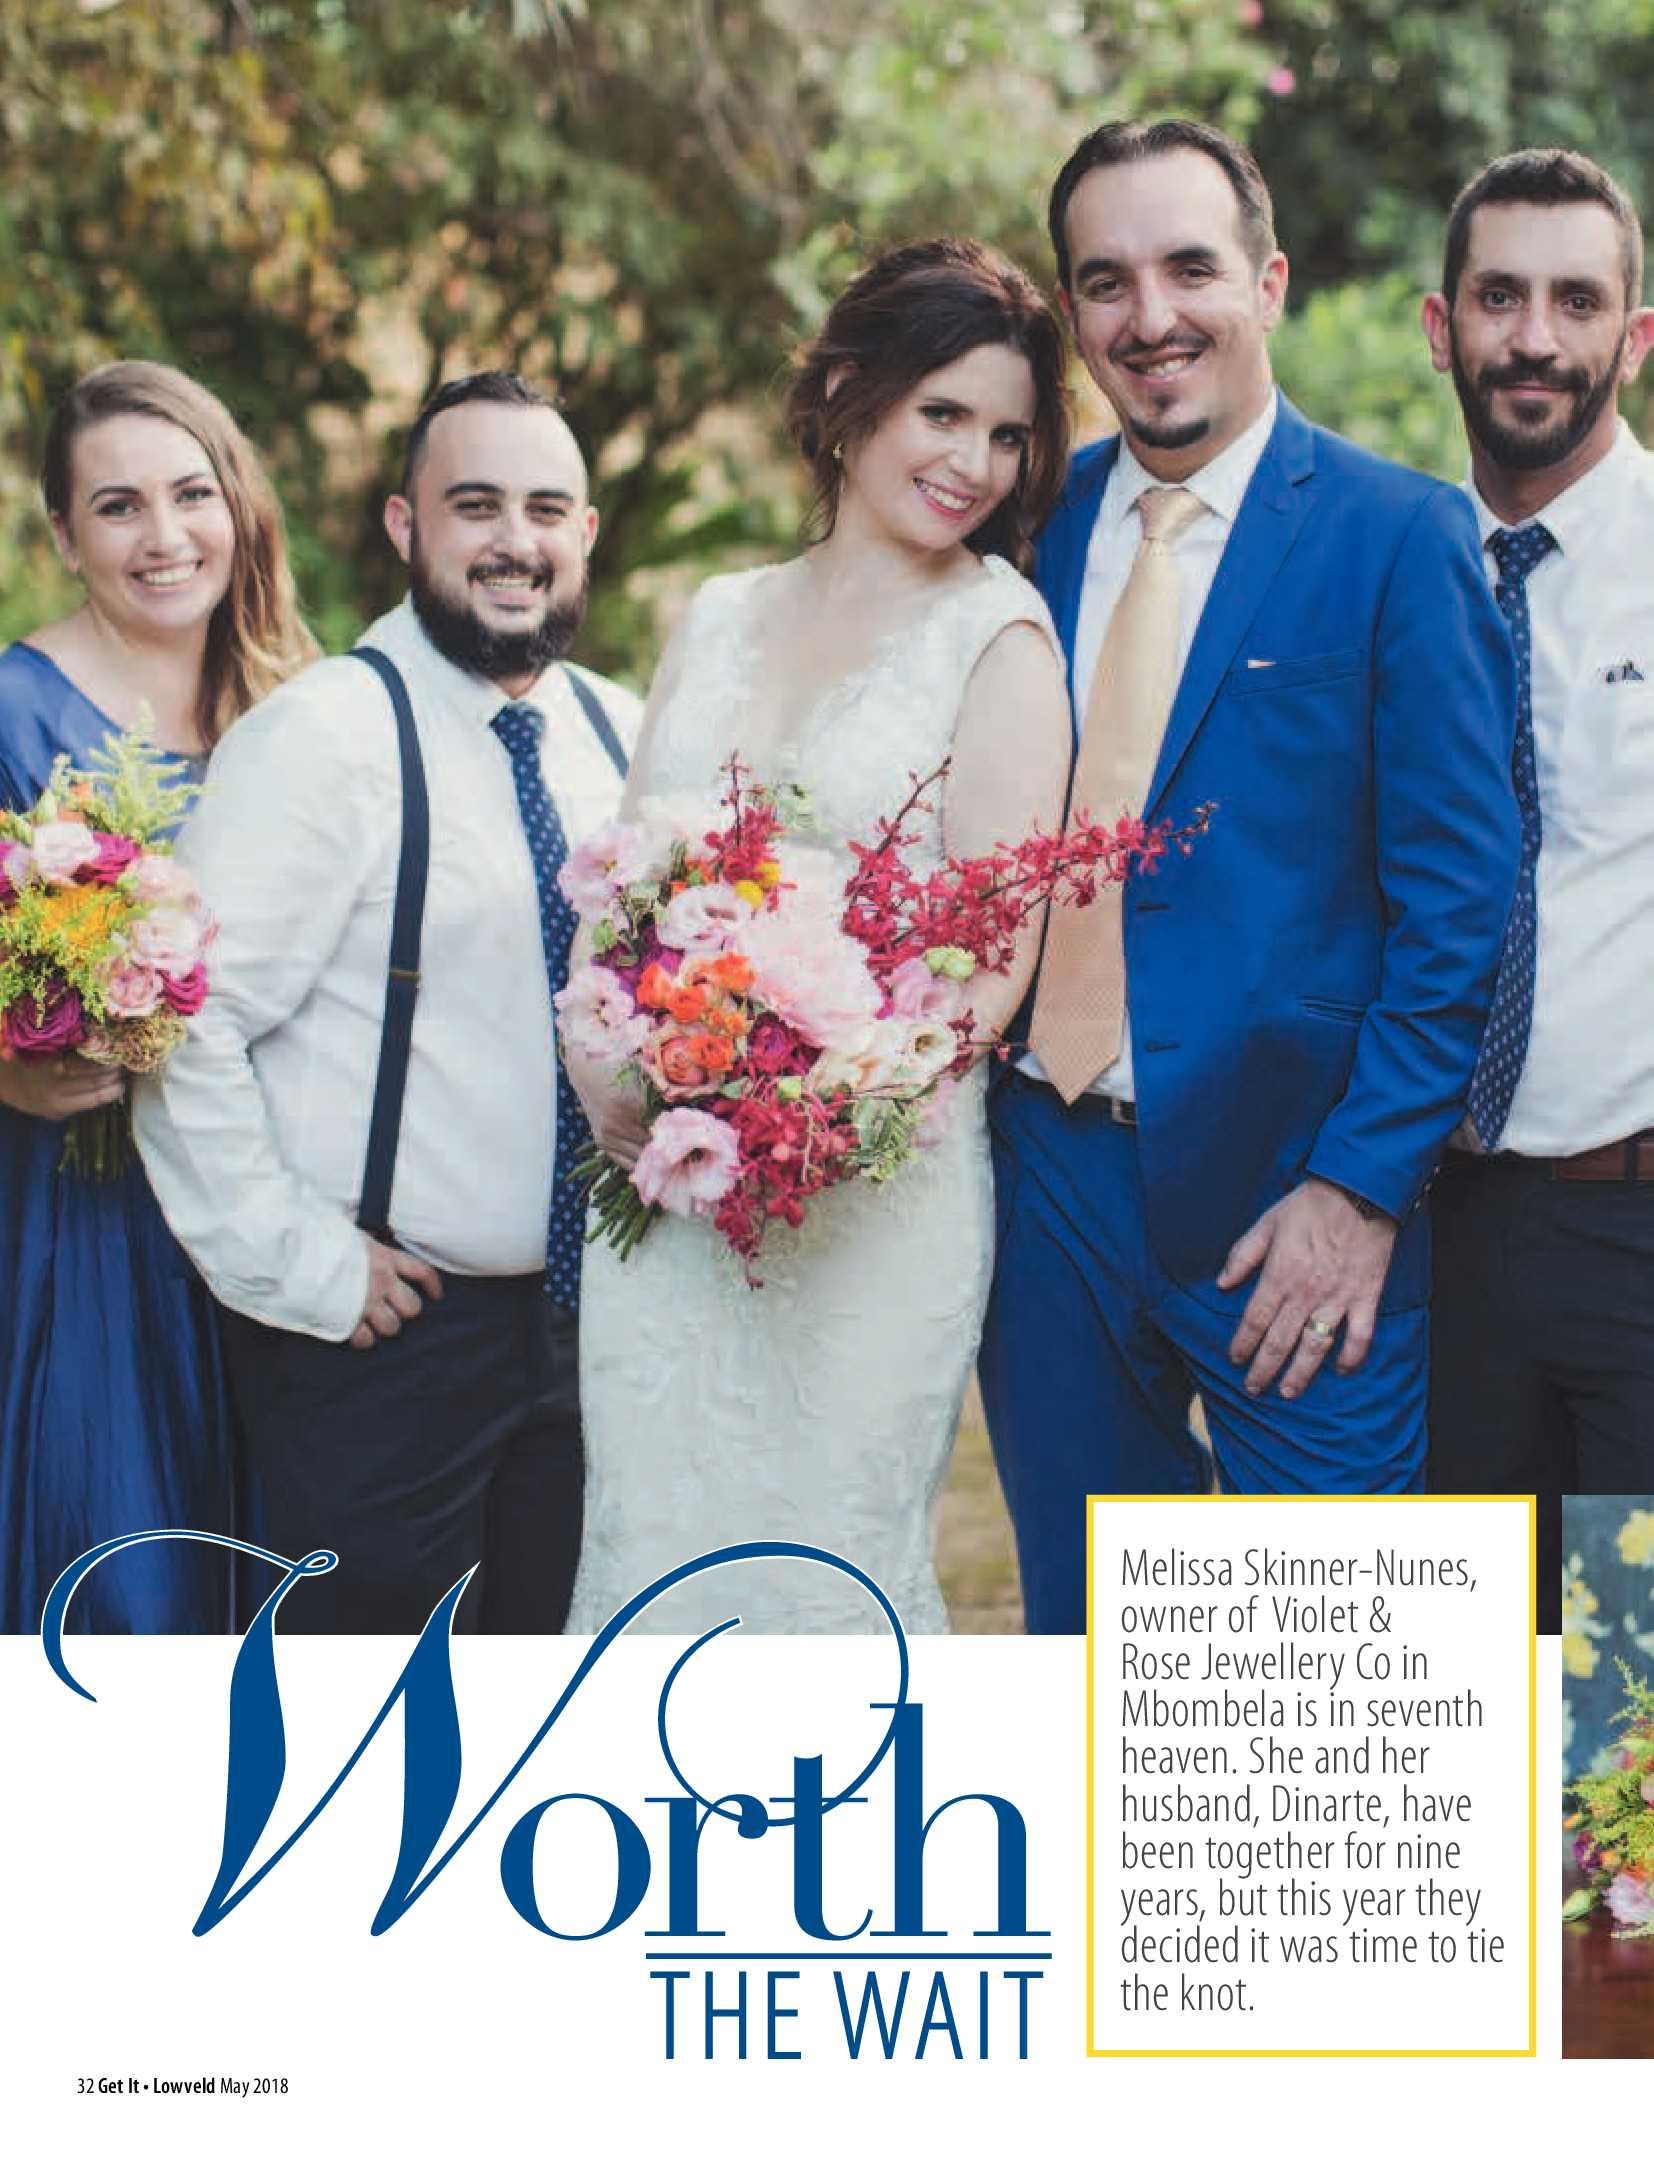 get-lowveld-magazine-may-2018-epapers-page-34